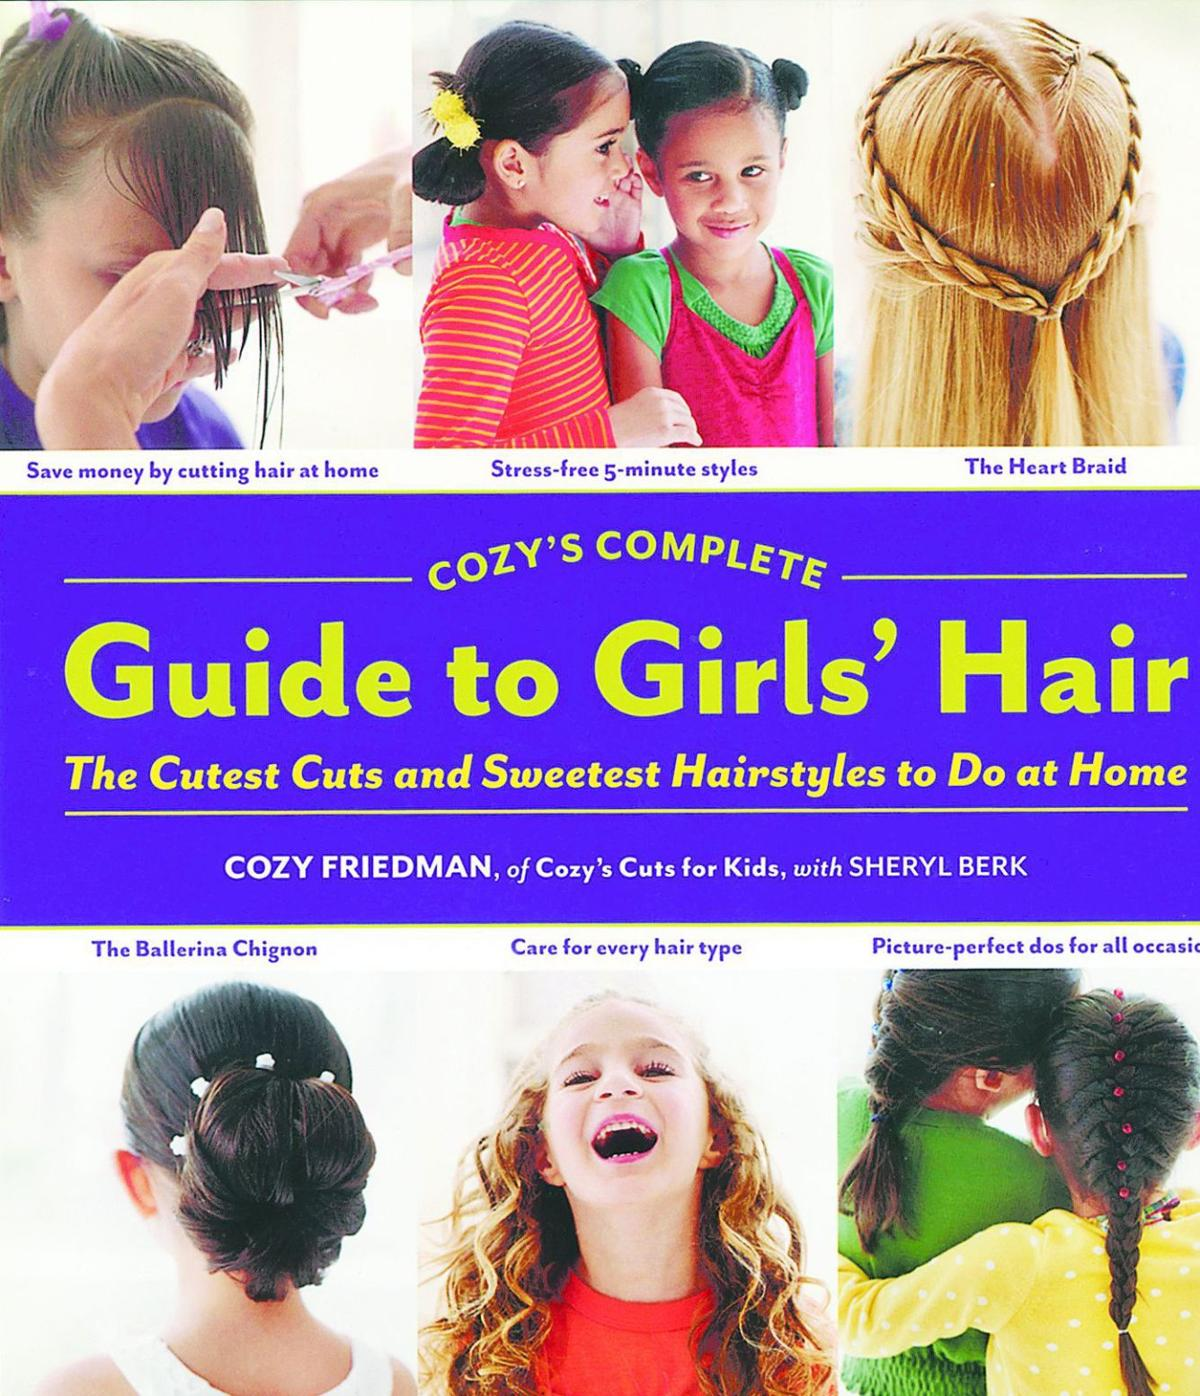 How-to book for little girls' hair